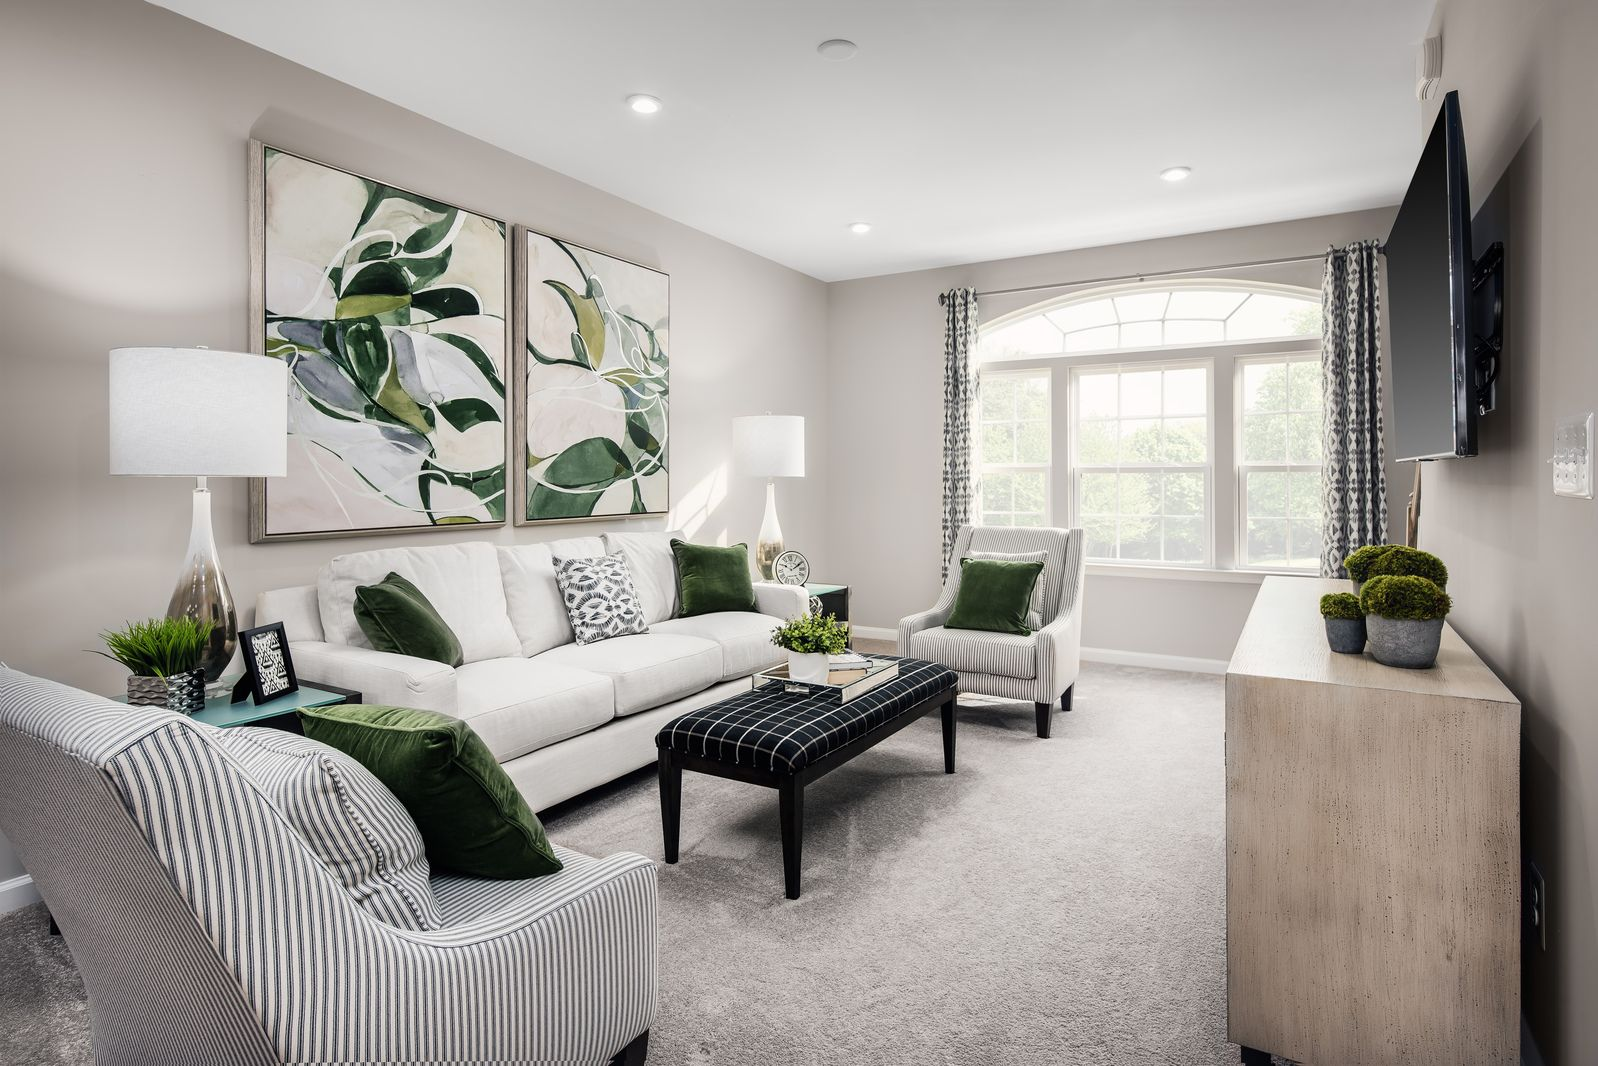 Living Area featured in the Hepburn with Loft By Ryan Homes in Washington, VA